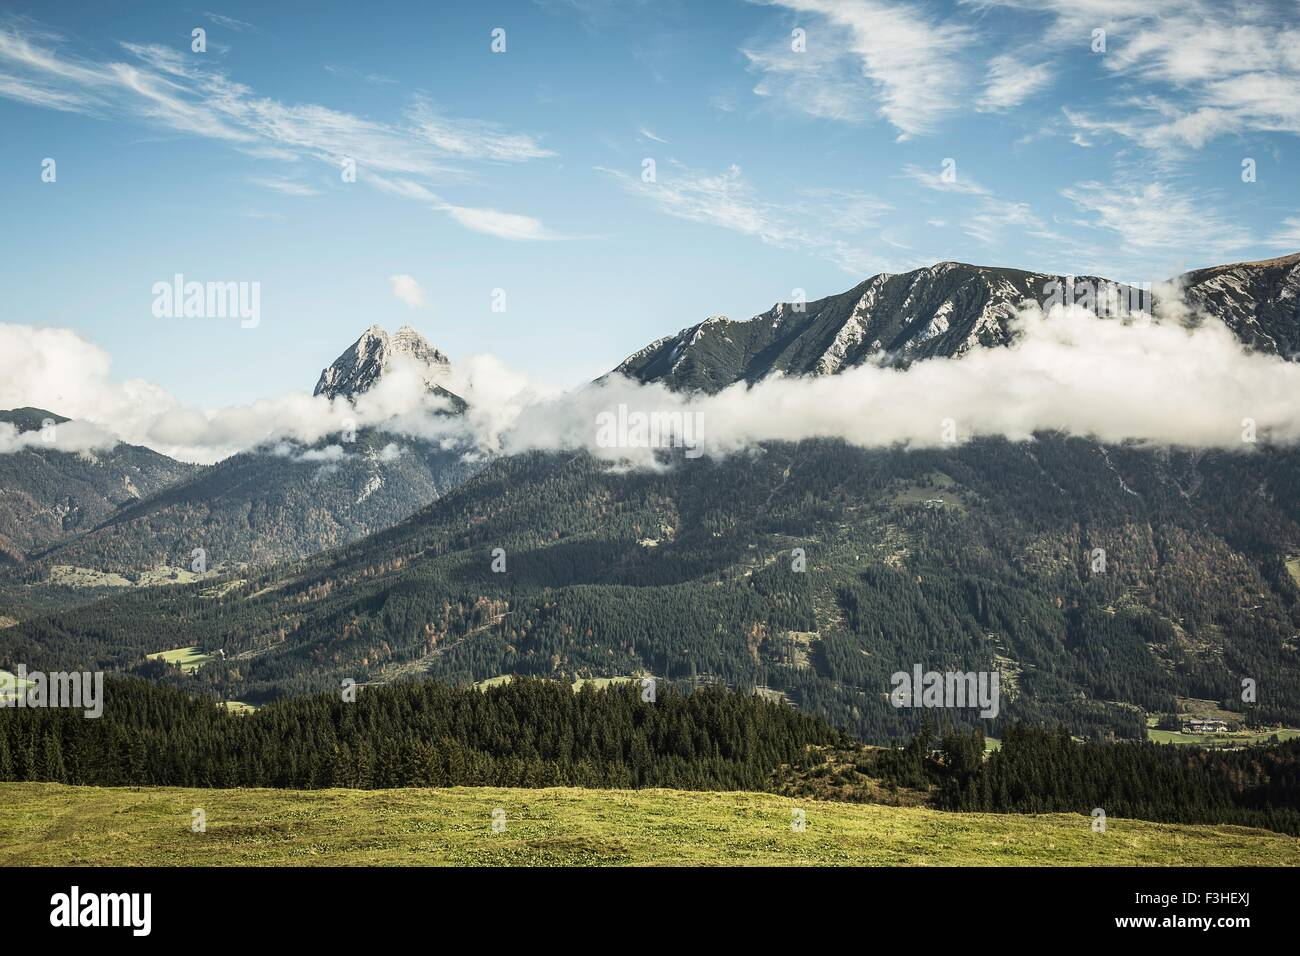 Landscape of mountains and low cloud, Achenkirch, Austria - Stock Image